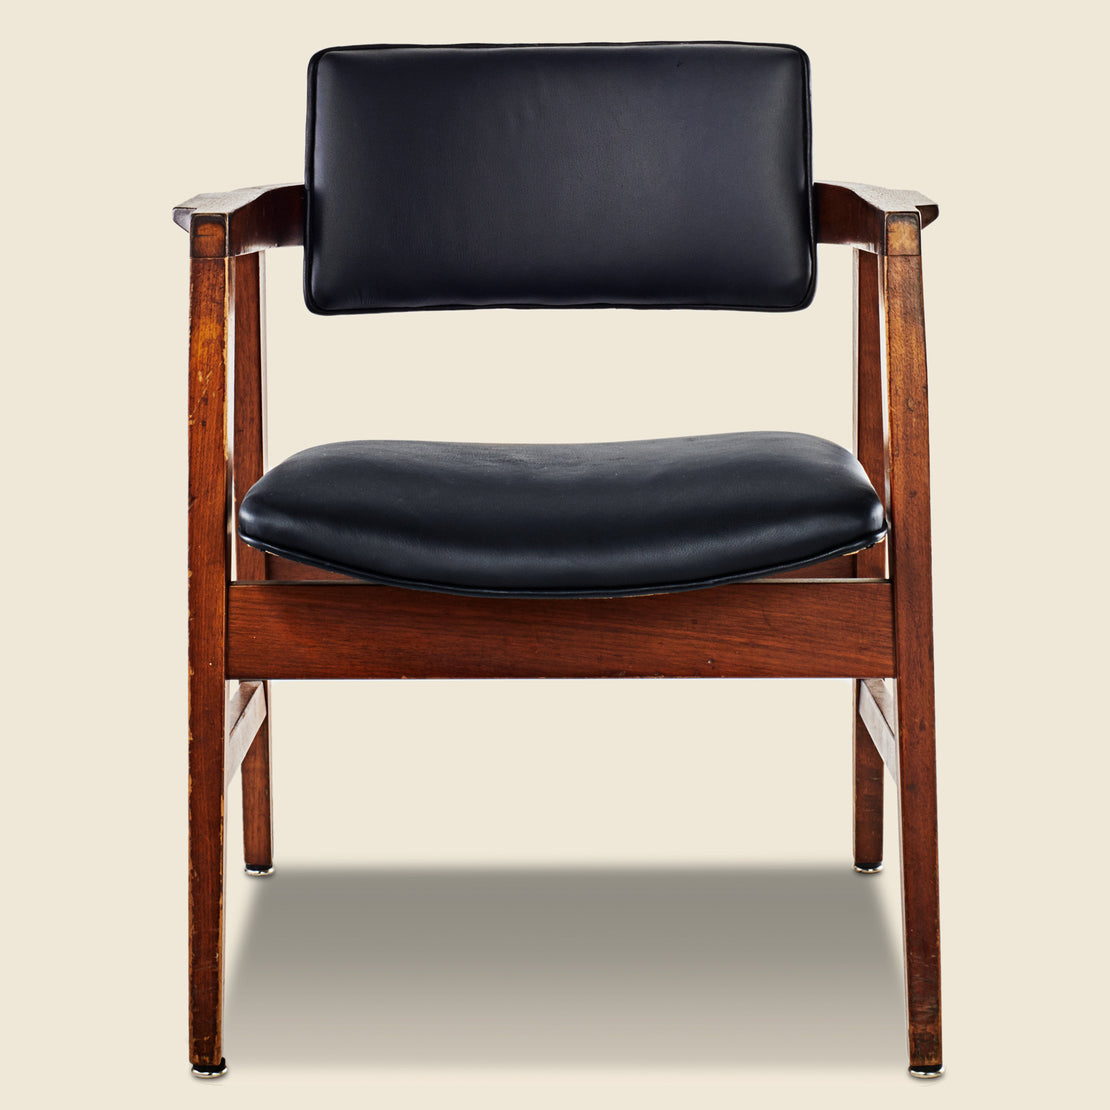 Mid-Century Gunlocke Chair - Vintage - STAG Provisions - Furniture - Chair